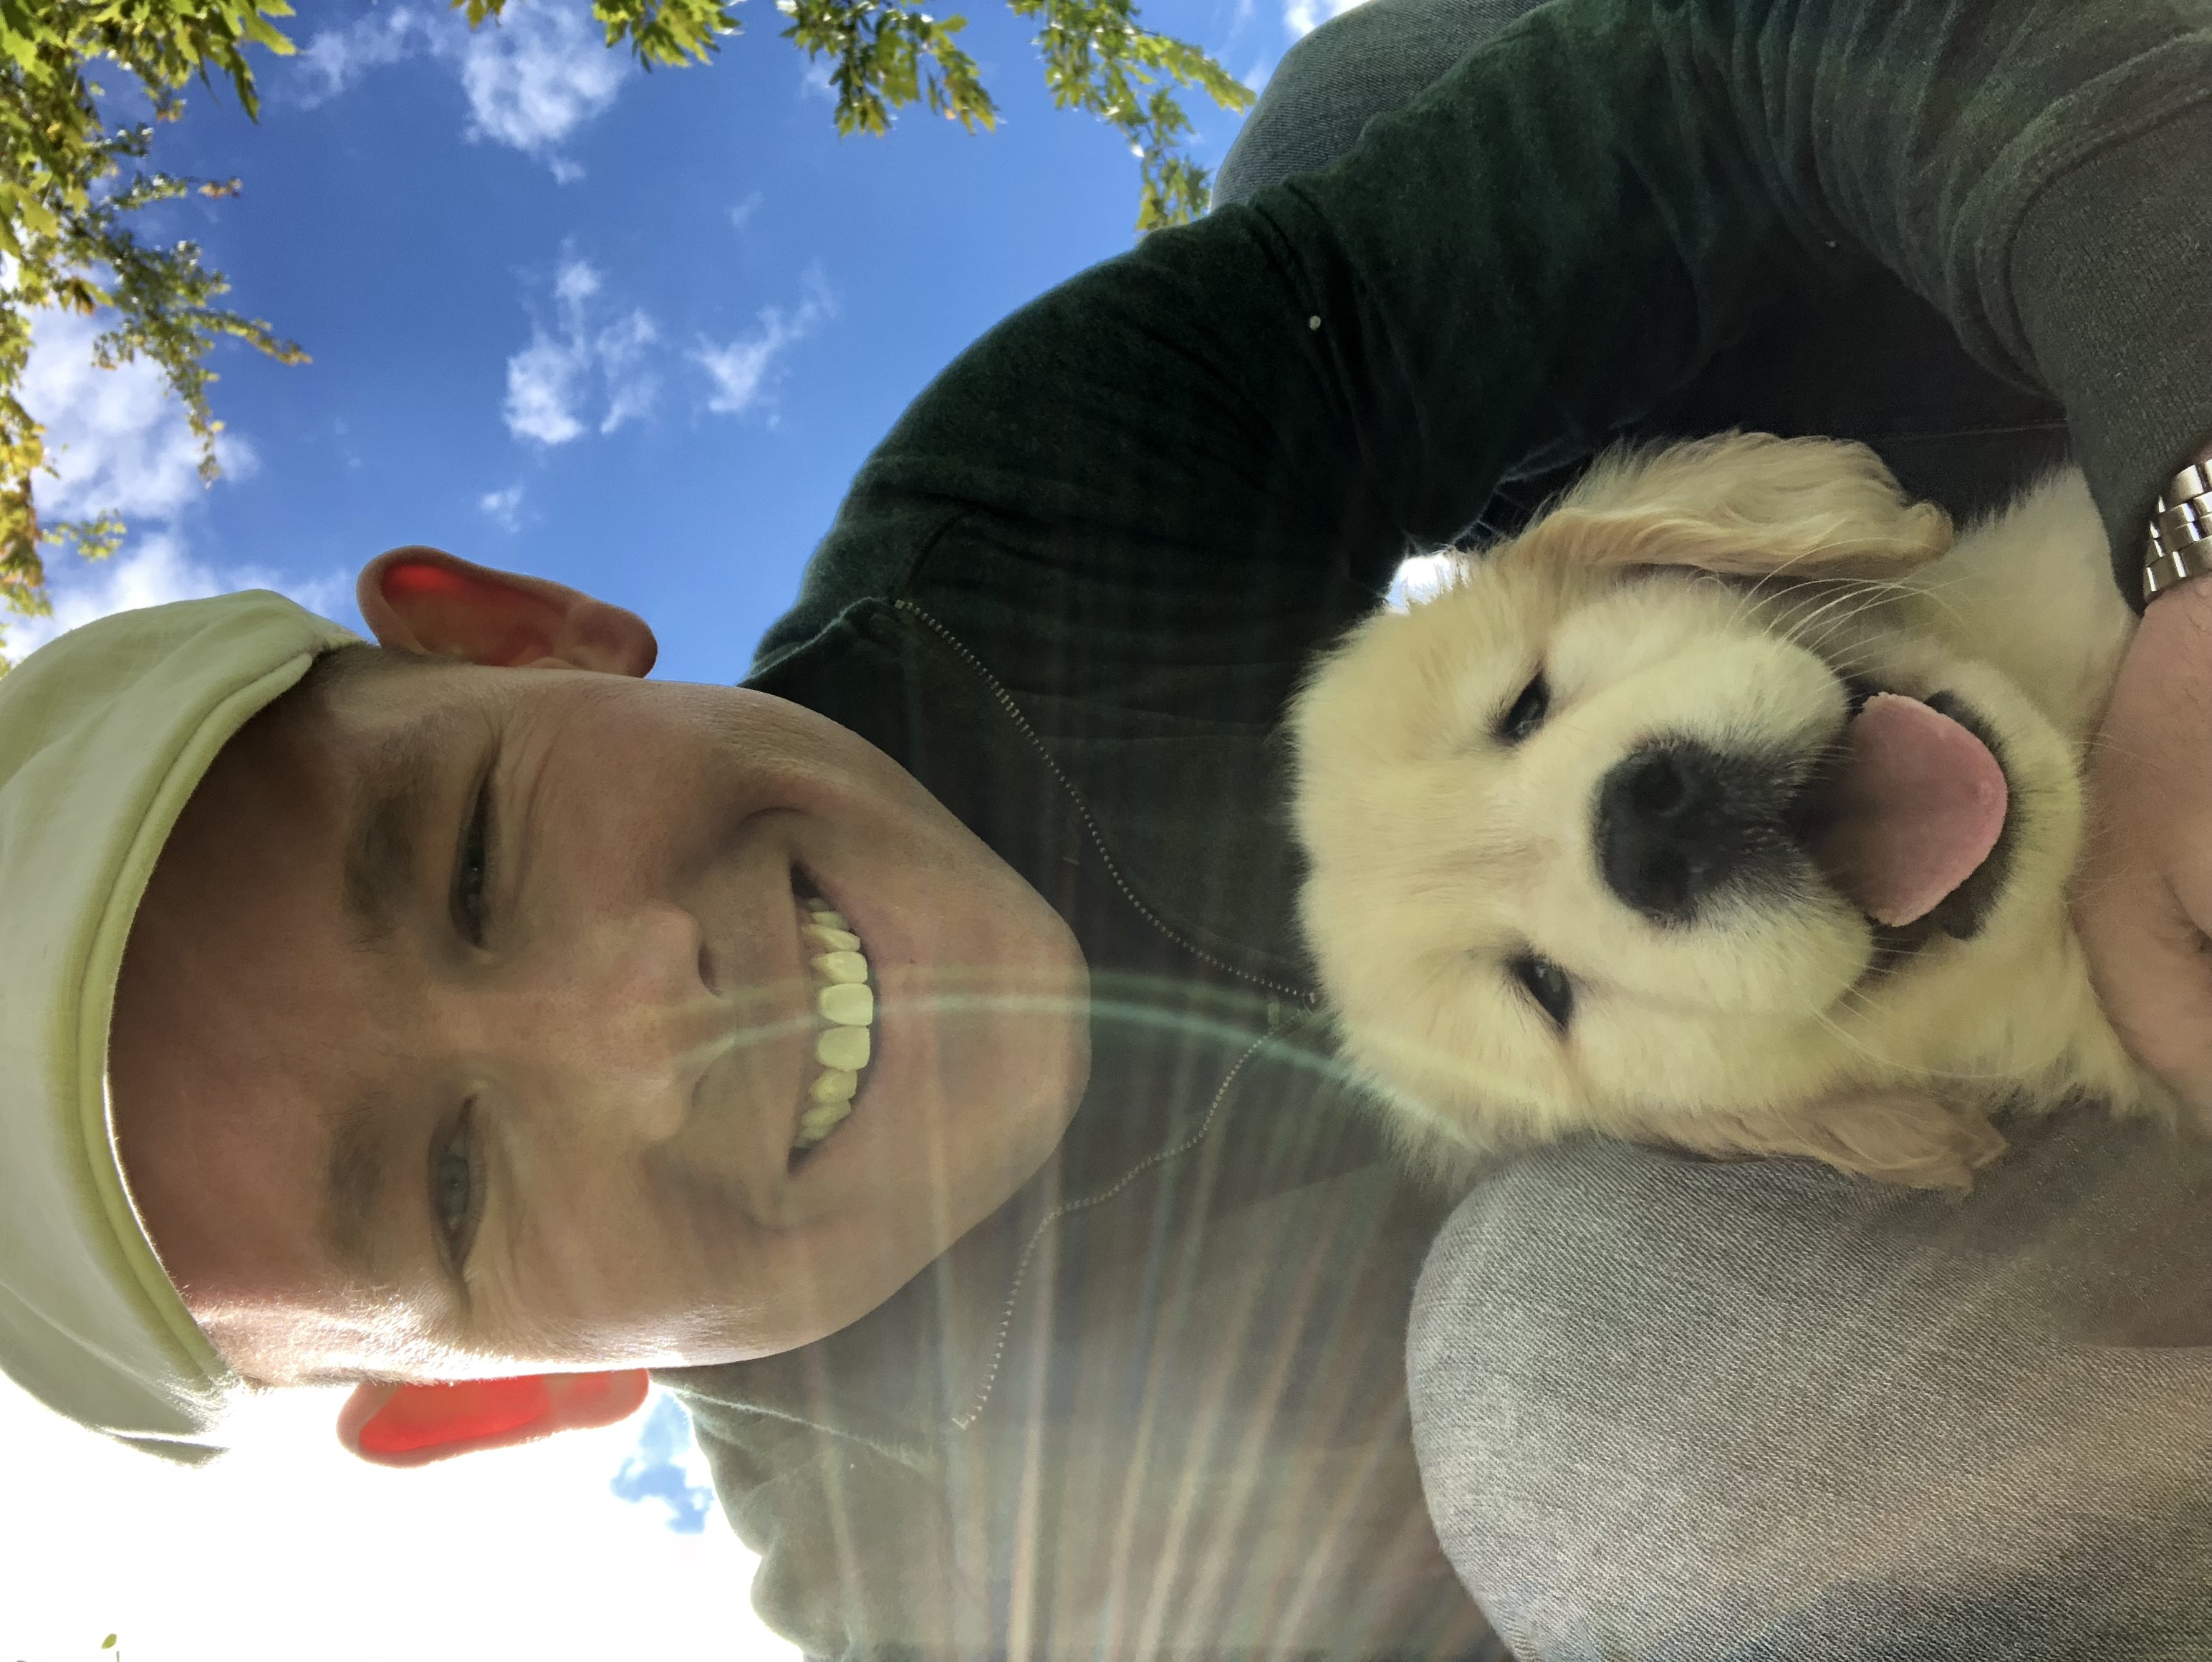 Thumbnail for Representative Haggerty with his Golden Retriever puppy Molly